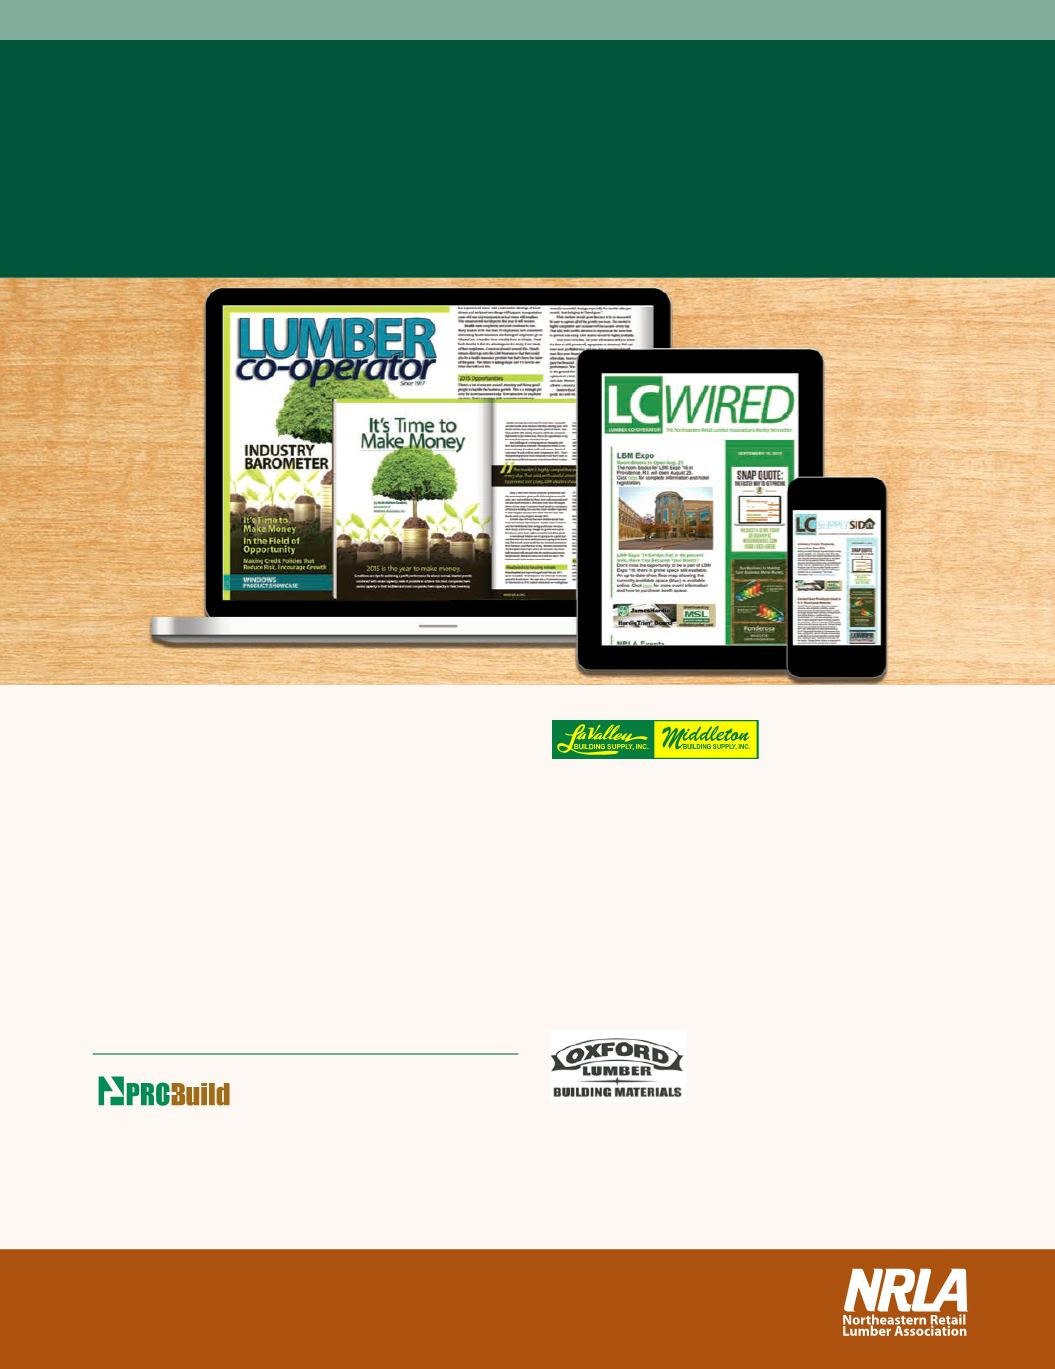 Lumber co-operator: Decking Special Issue 2015